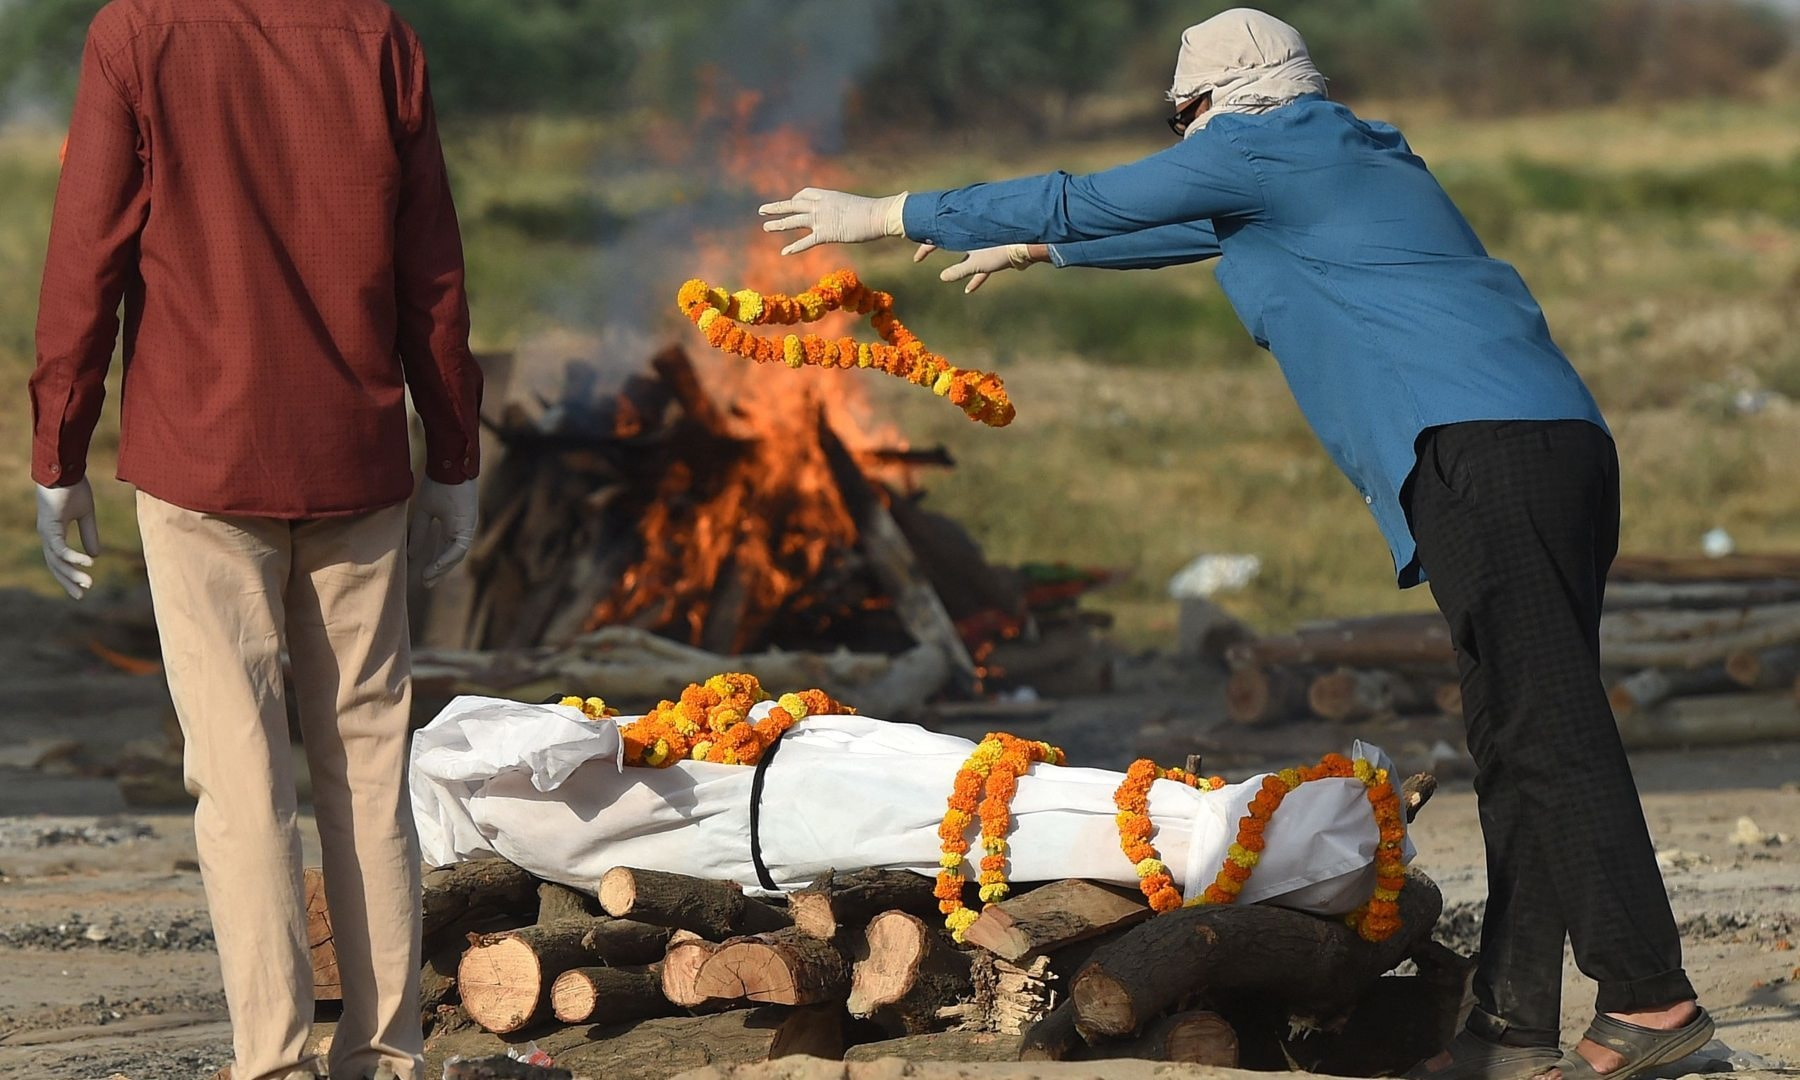 Relatives perform the last rites before the cremation of their loved one who died due to Covid-19 at a cremation ground in Allahabad, India on May 4. — AFP